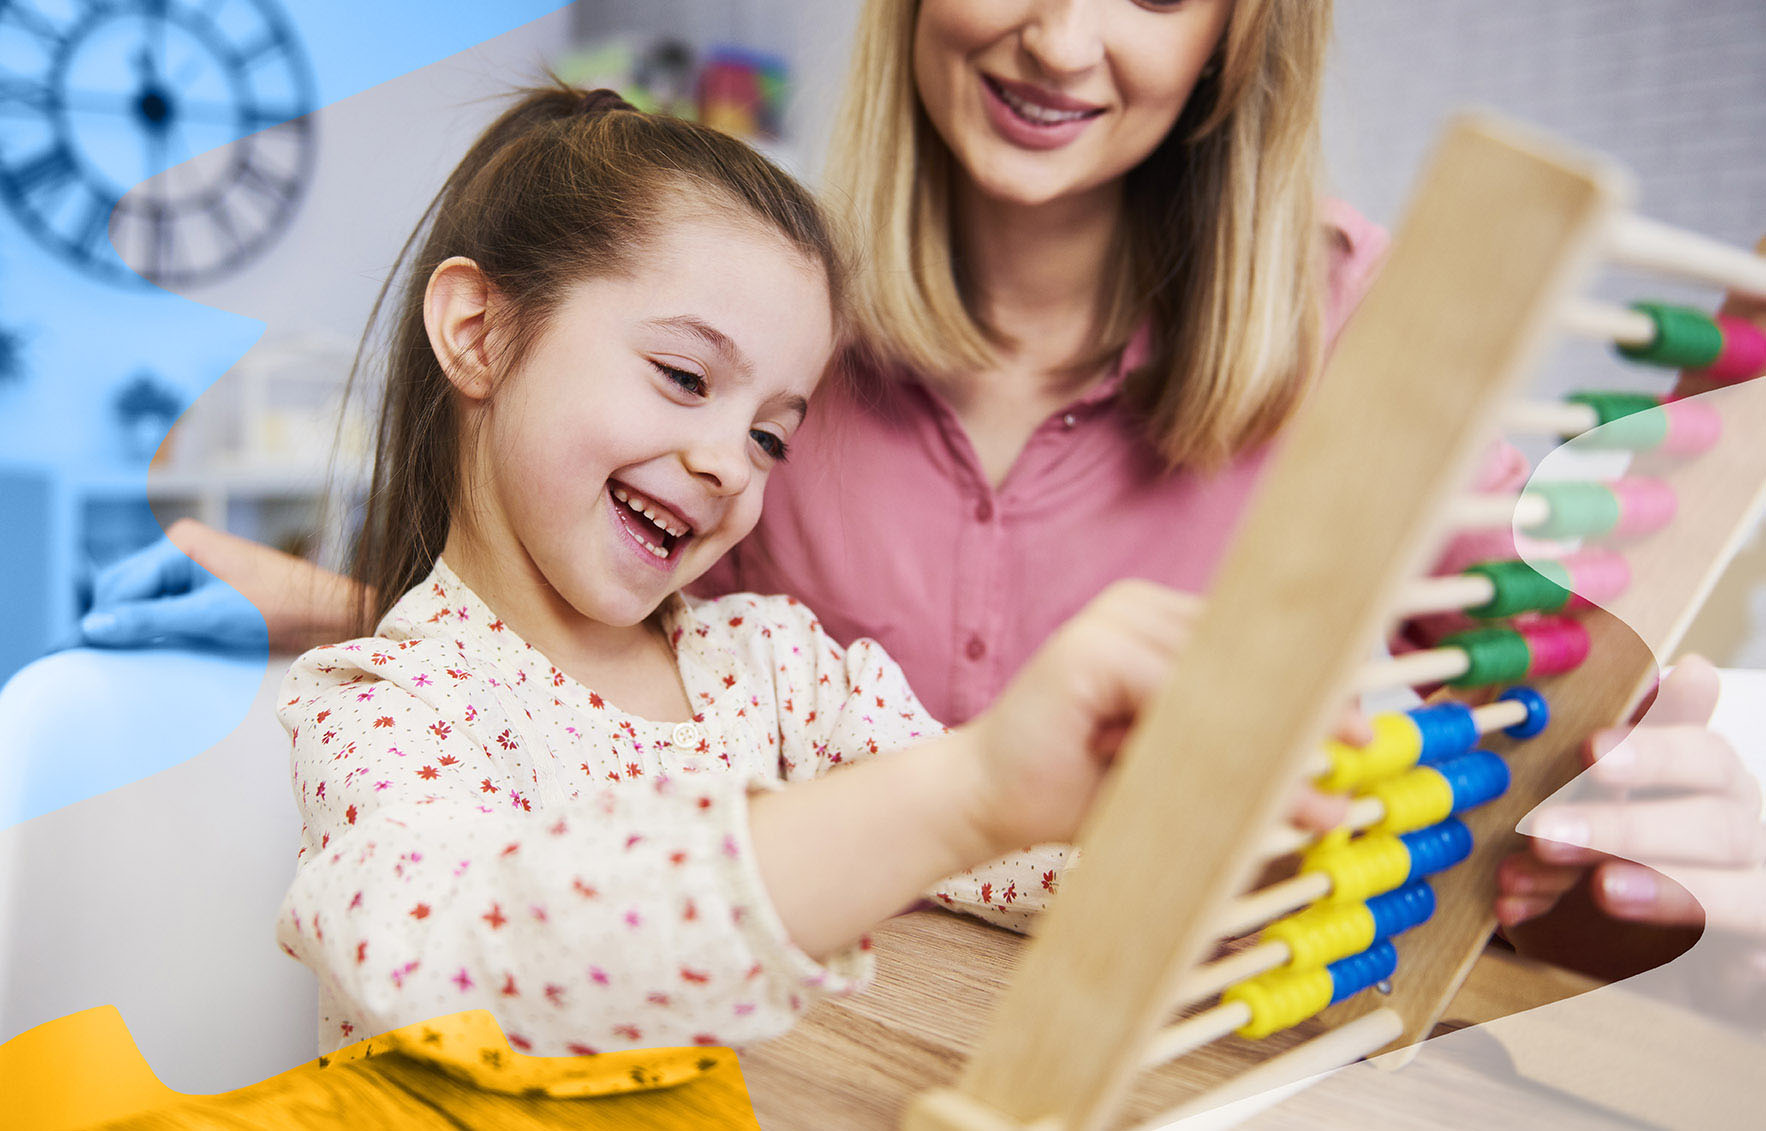 Remote learning in Special Education: 5 Steps to Make this Transition Successful